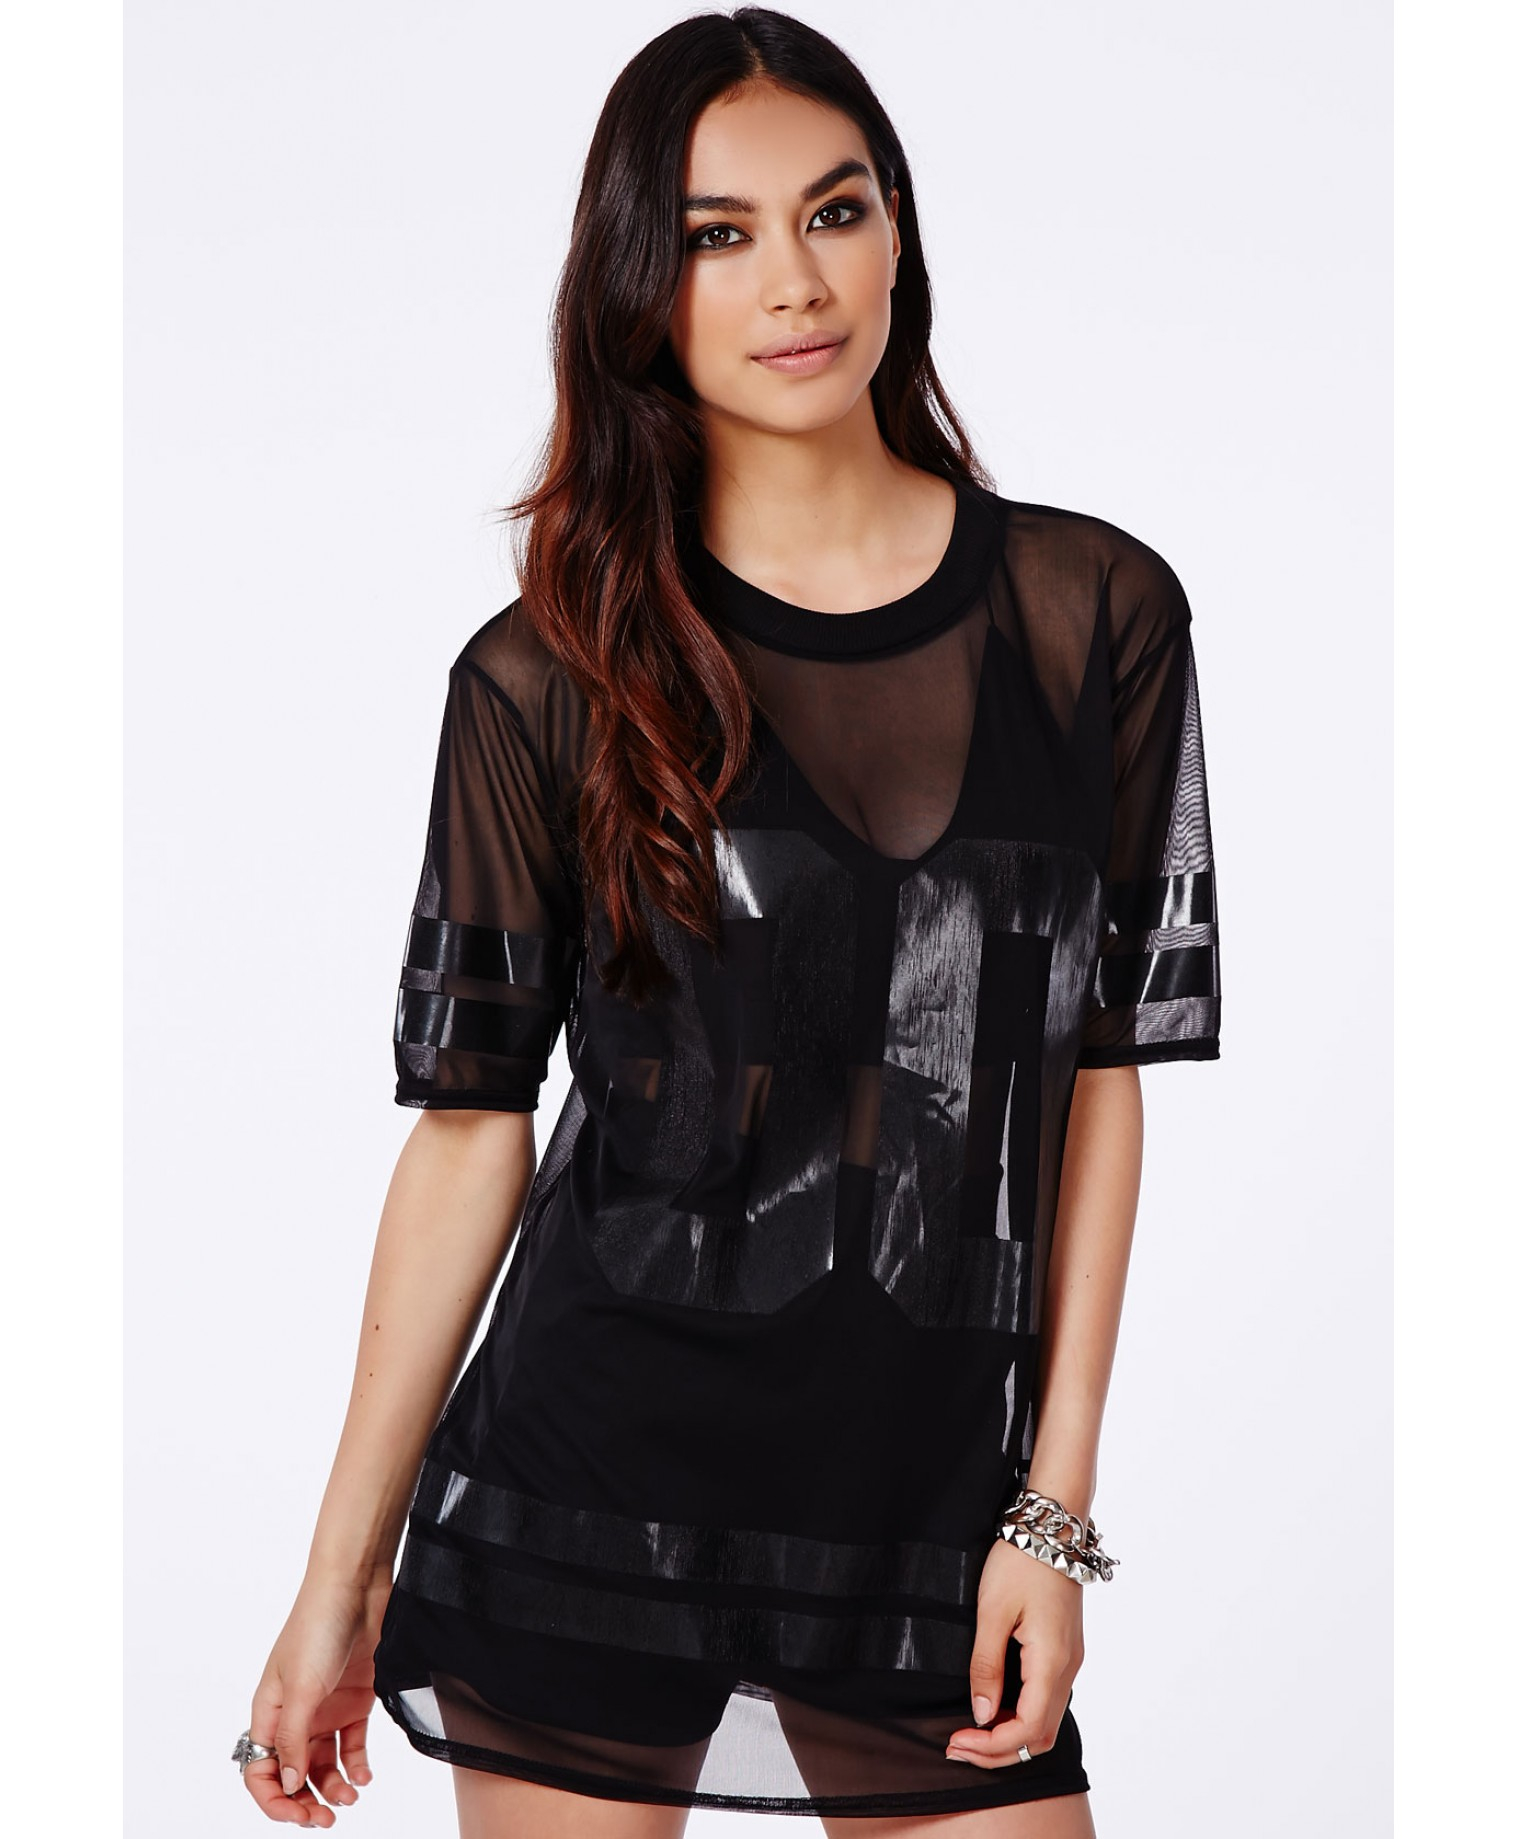 Lyst - Missguided Hugette Black American Football Mesh T-Shirt in Black 36965a868